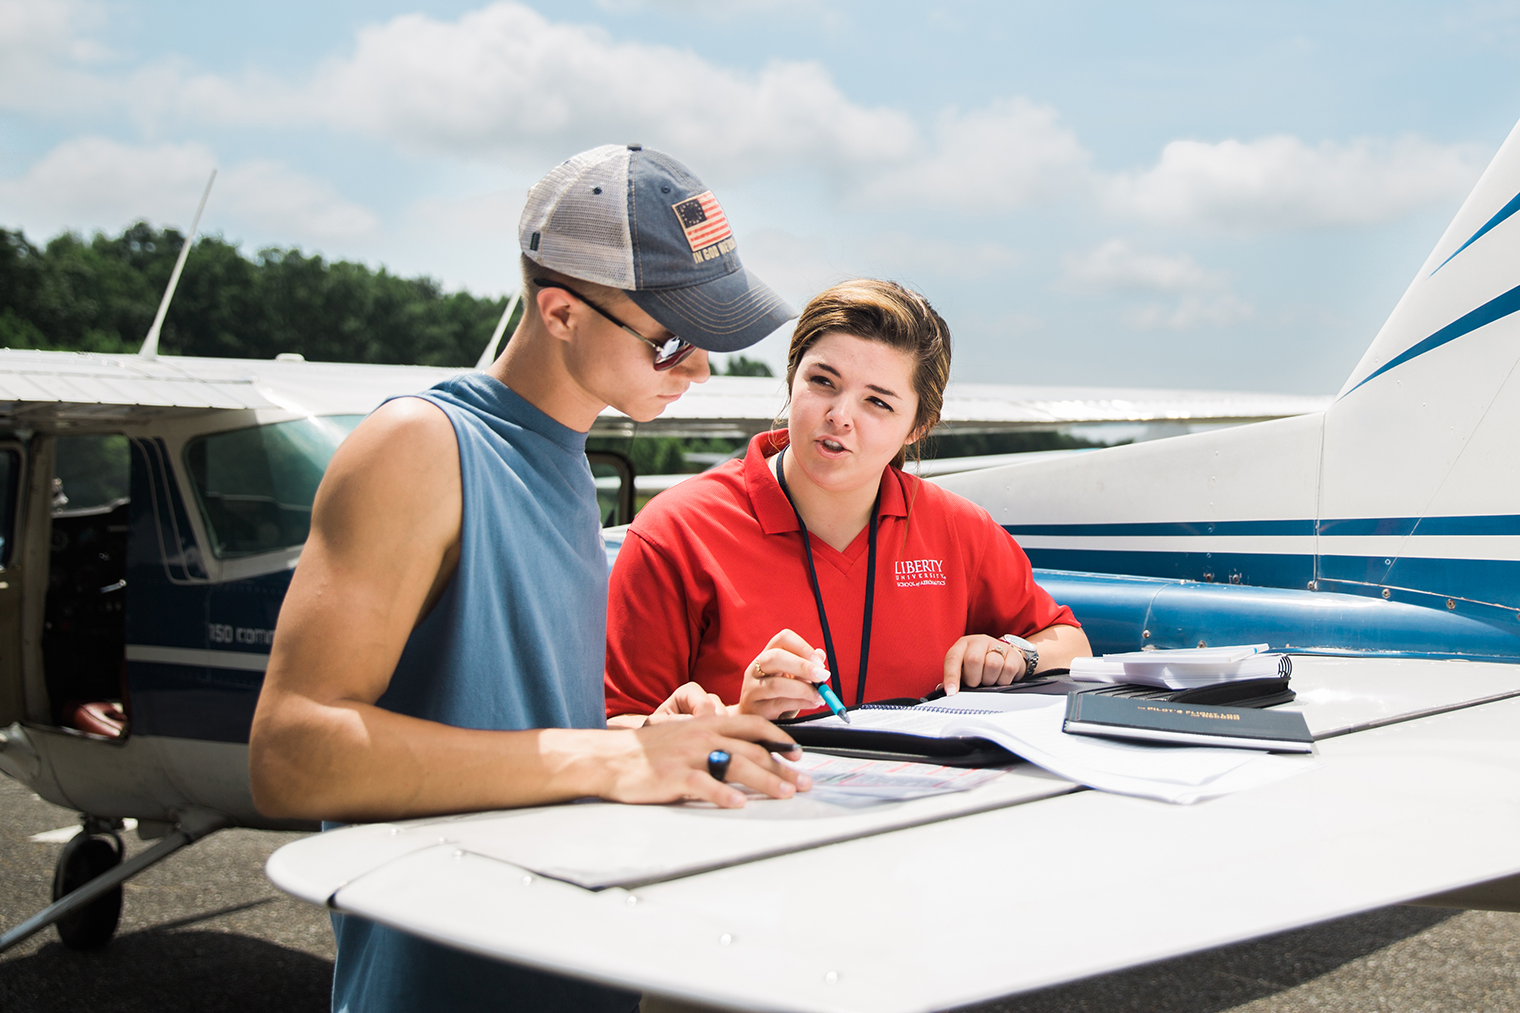 Dalton Joyce (left) discusses a flight plan with Kaitlyn Allen, his Liberty University flight instructor. (Photo by Kevin Manguiob)